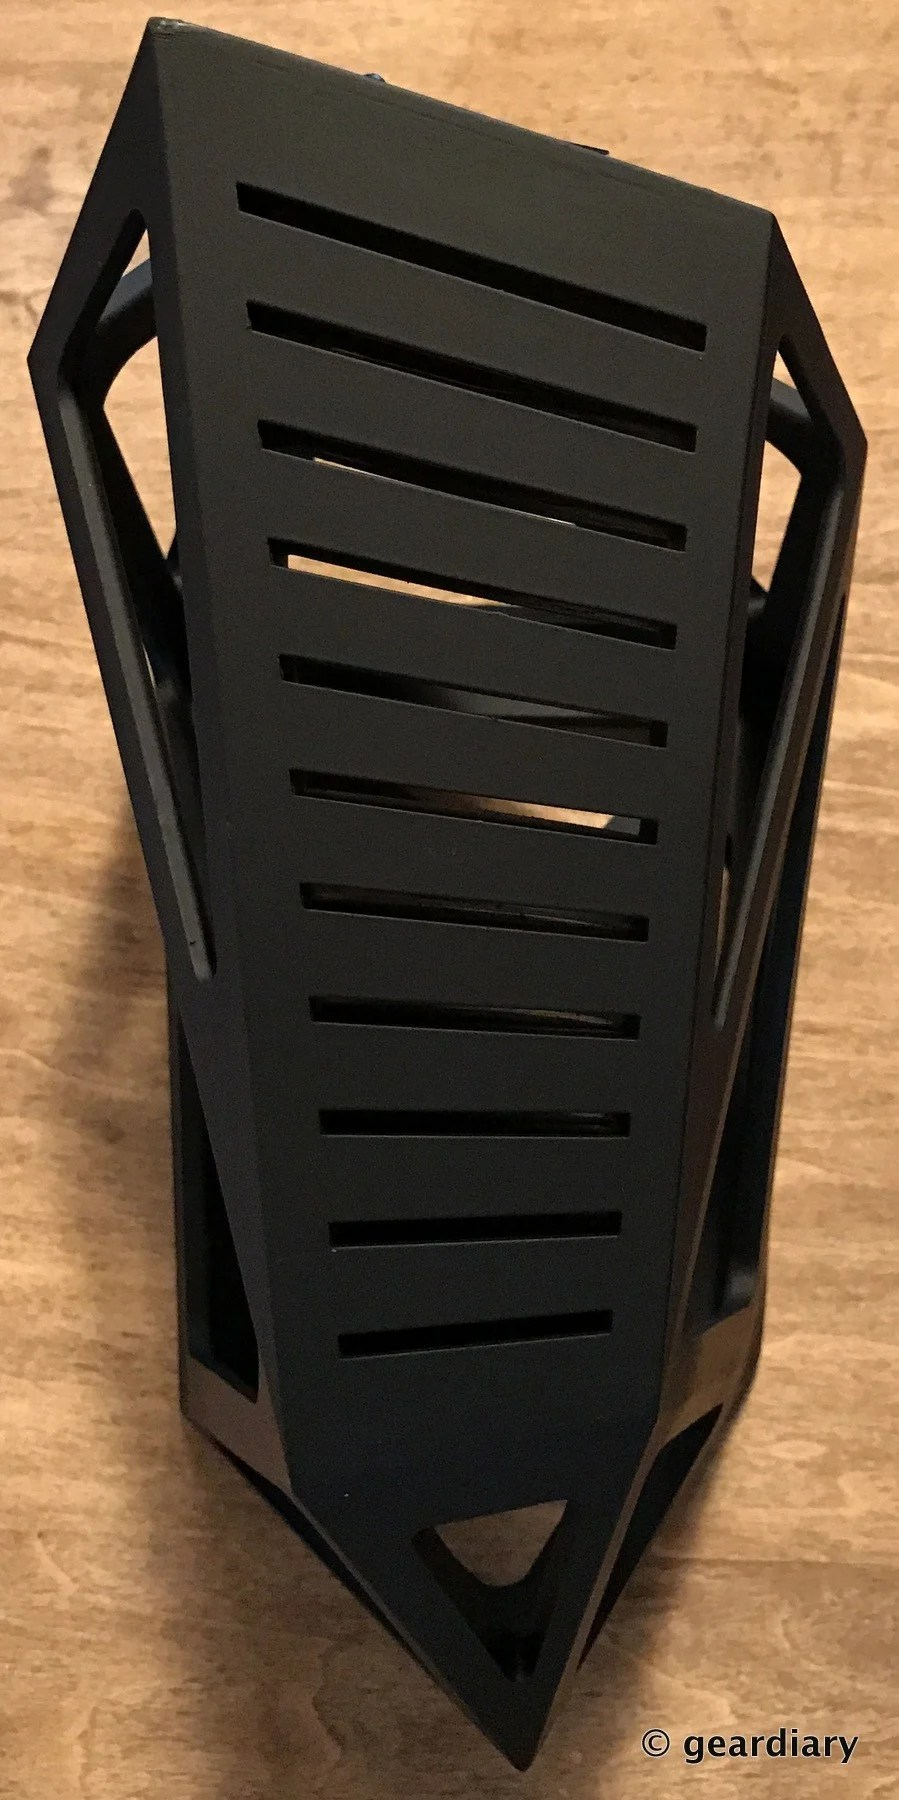 GearDiary Edge of Belgravia Precision Chef Knife Series and the Black Diamond Knife Block: Functional Art for the Kitchen